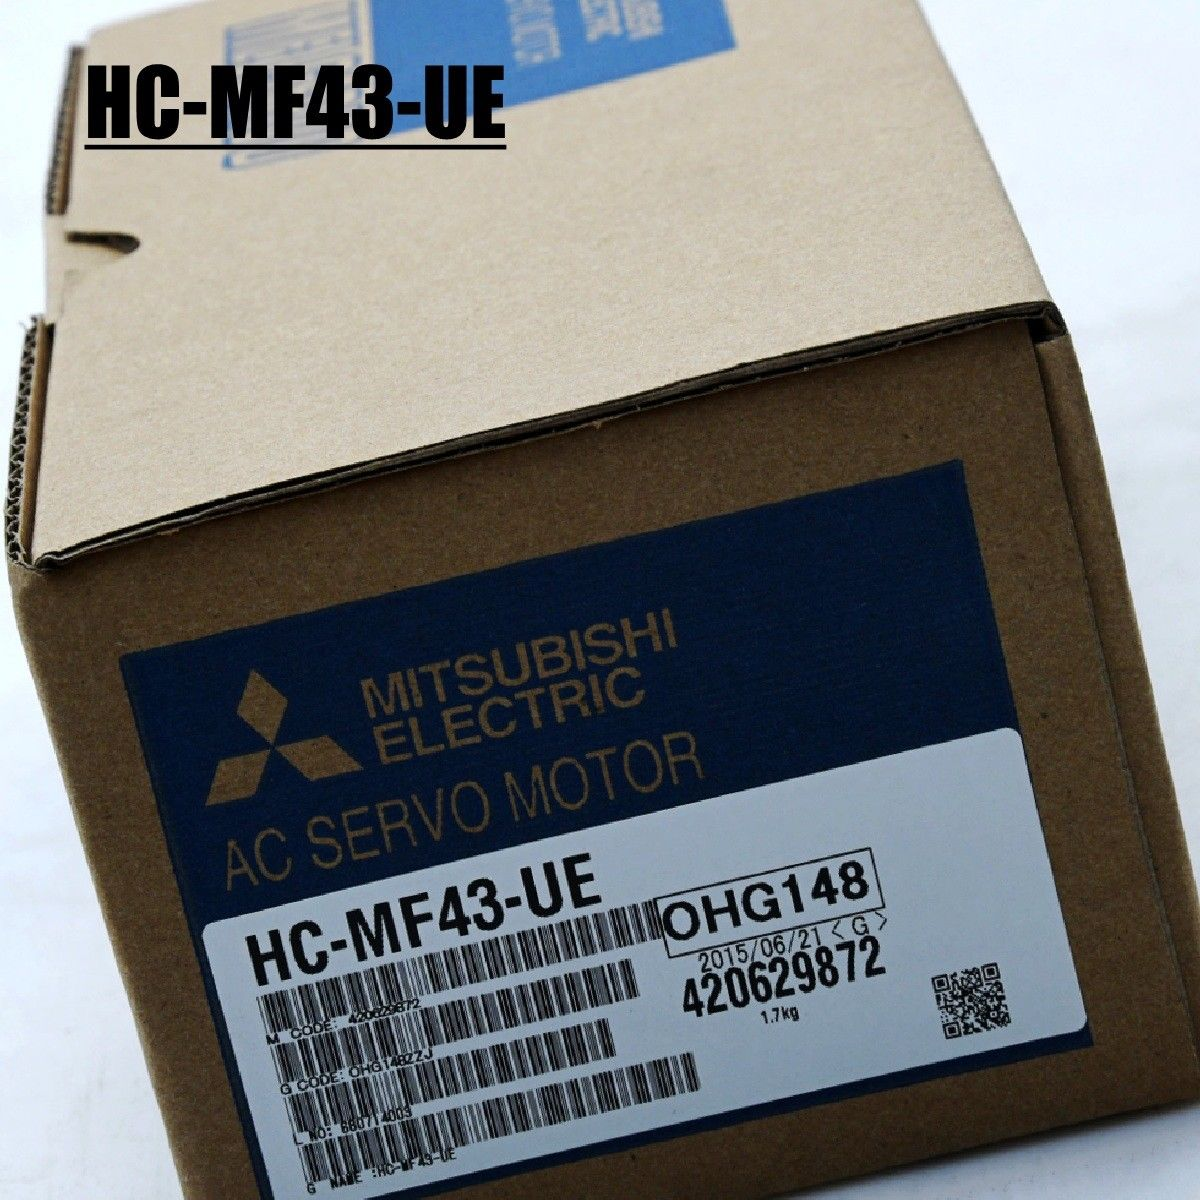 100% NEW Mitsubishi Servo Motor HC-MF43-UE IN BOX HCMF43UE